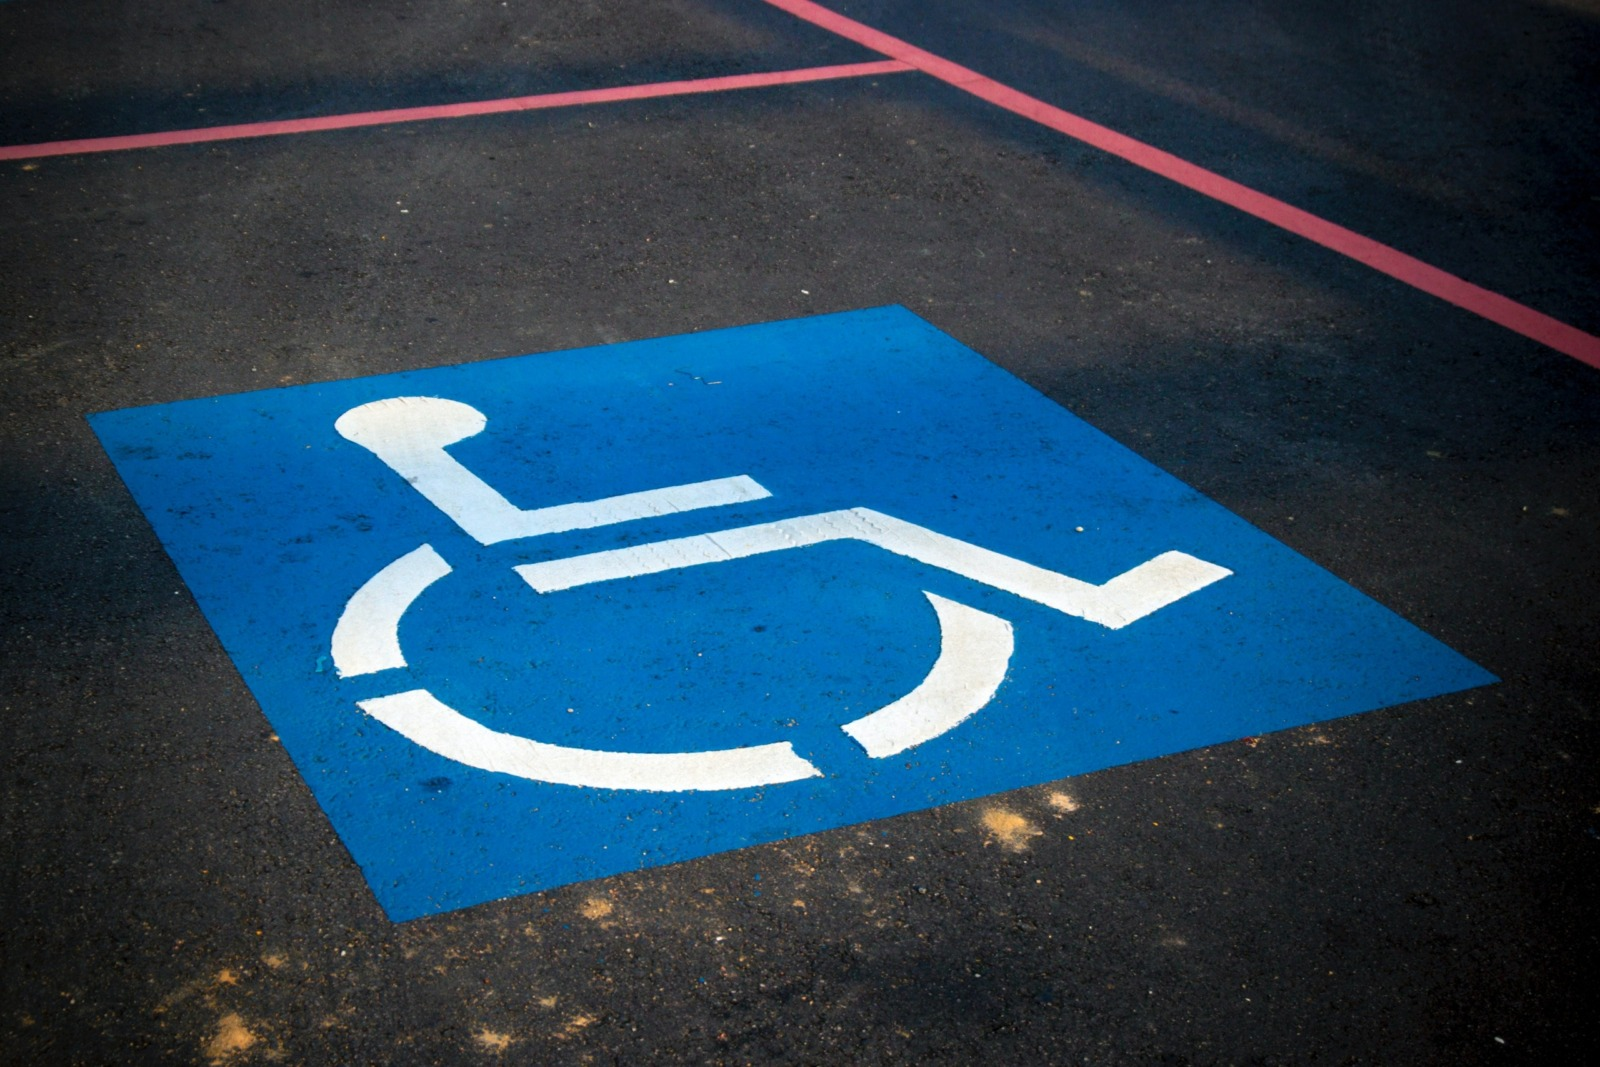 A disabled parking space in a parking lot.